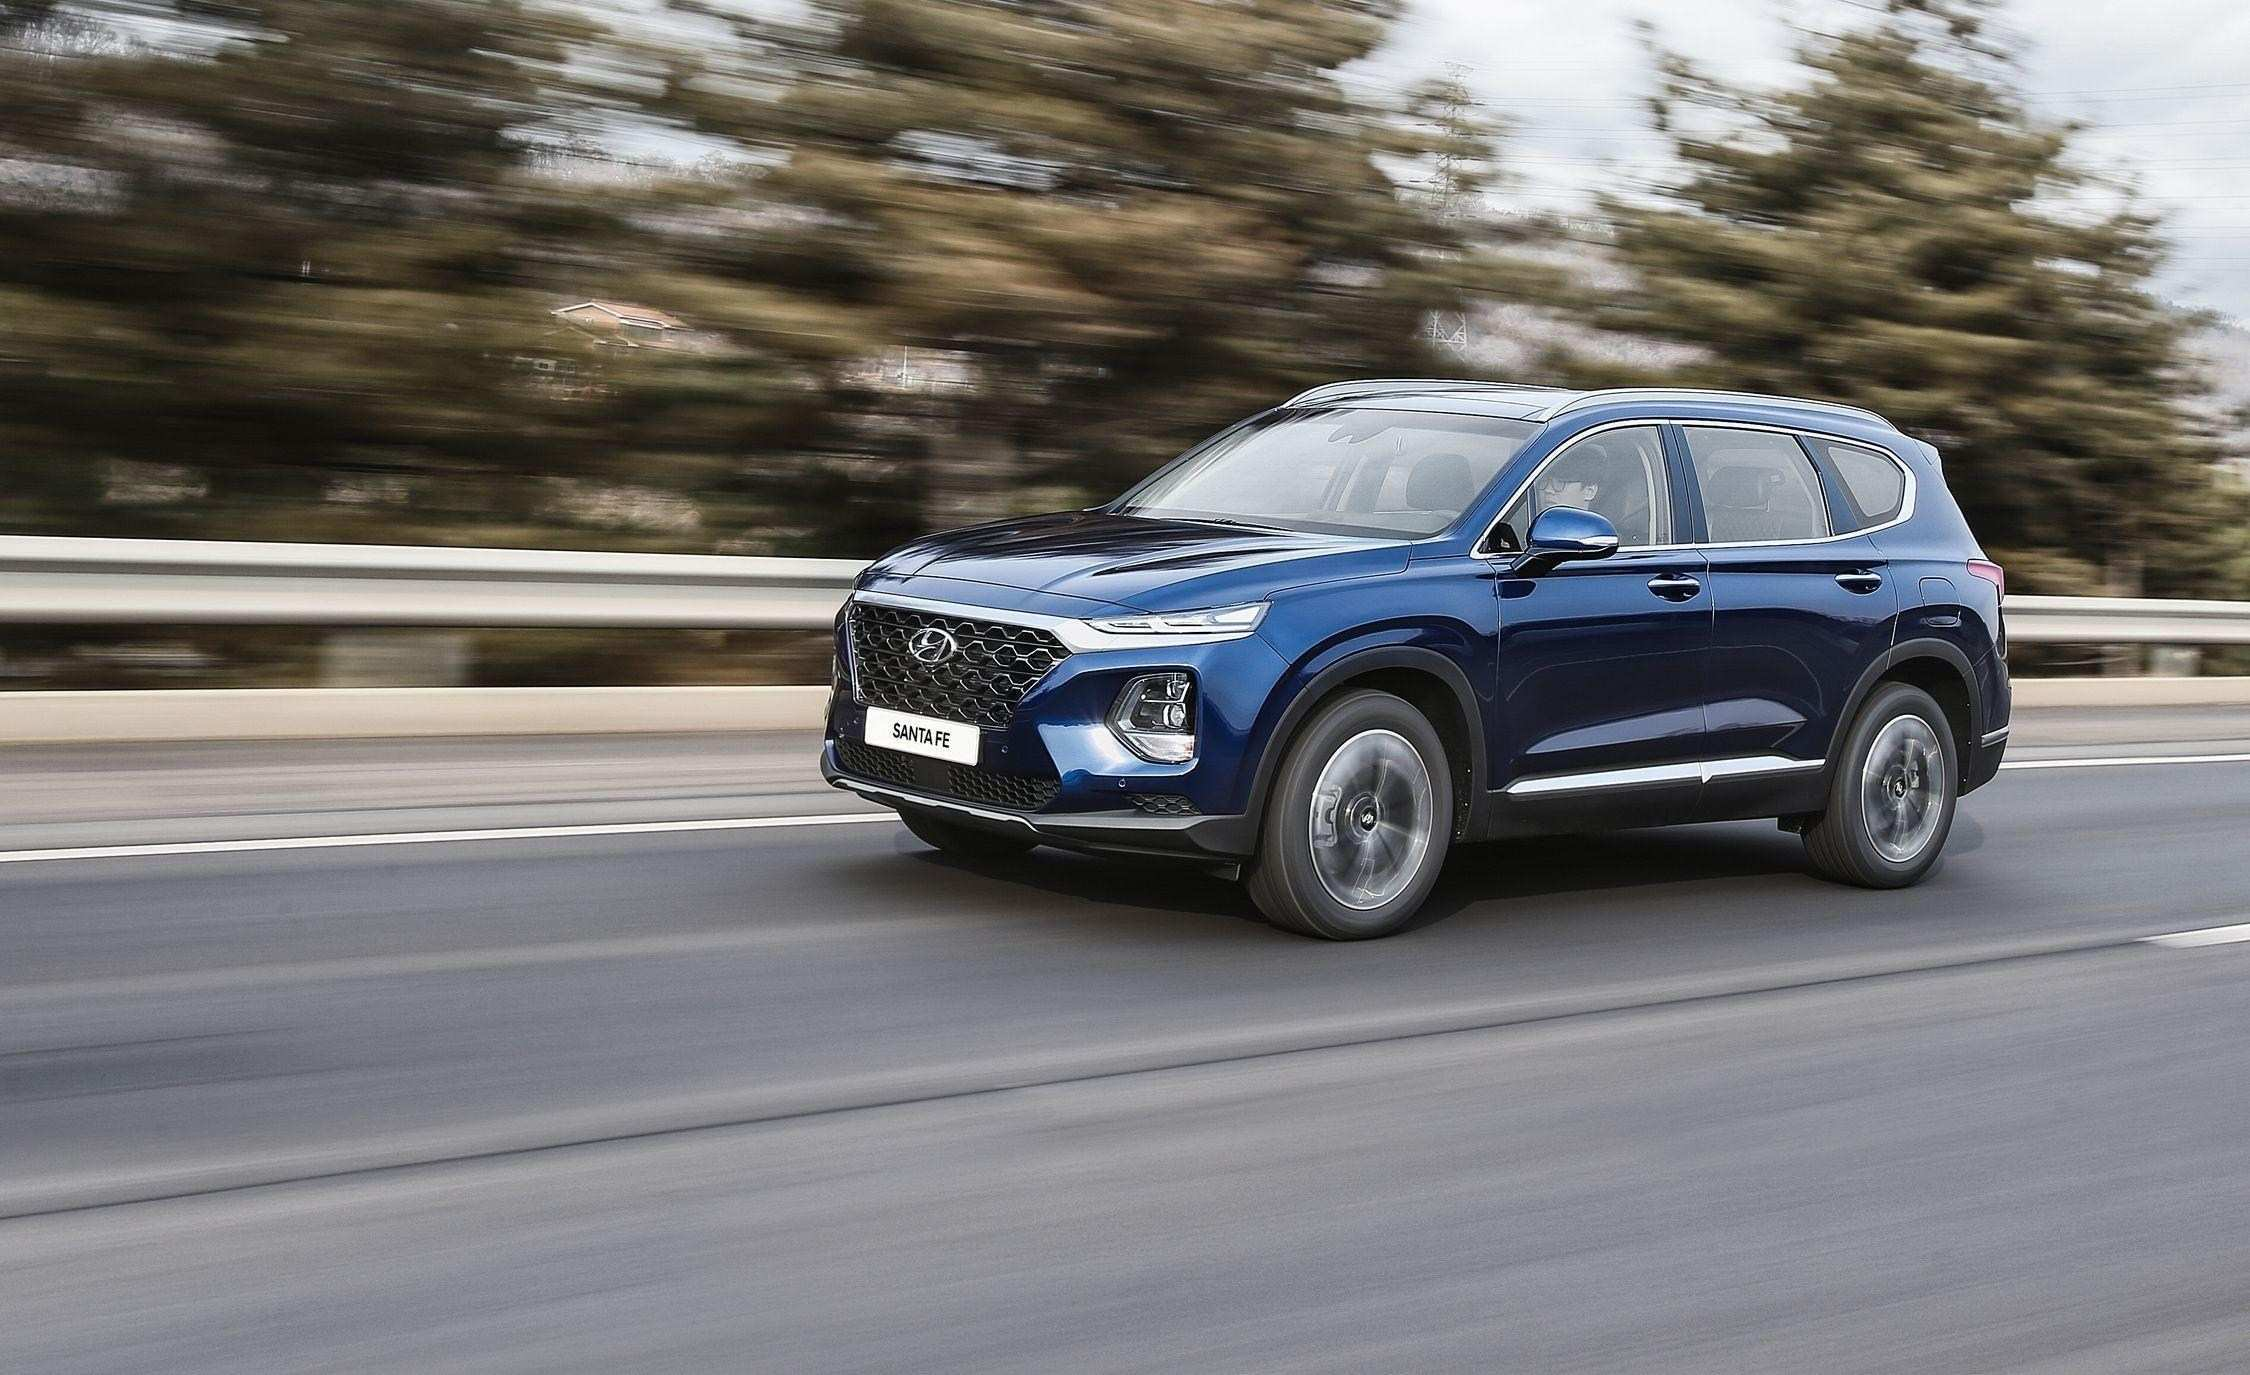 37 Great 2019 Hyundai Santa Fe Test Drive Redesign and Concept by 2019 Hyundai Santa Fe Test Drive